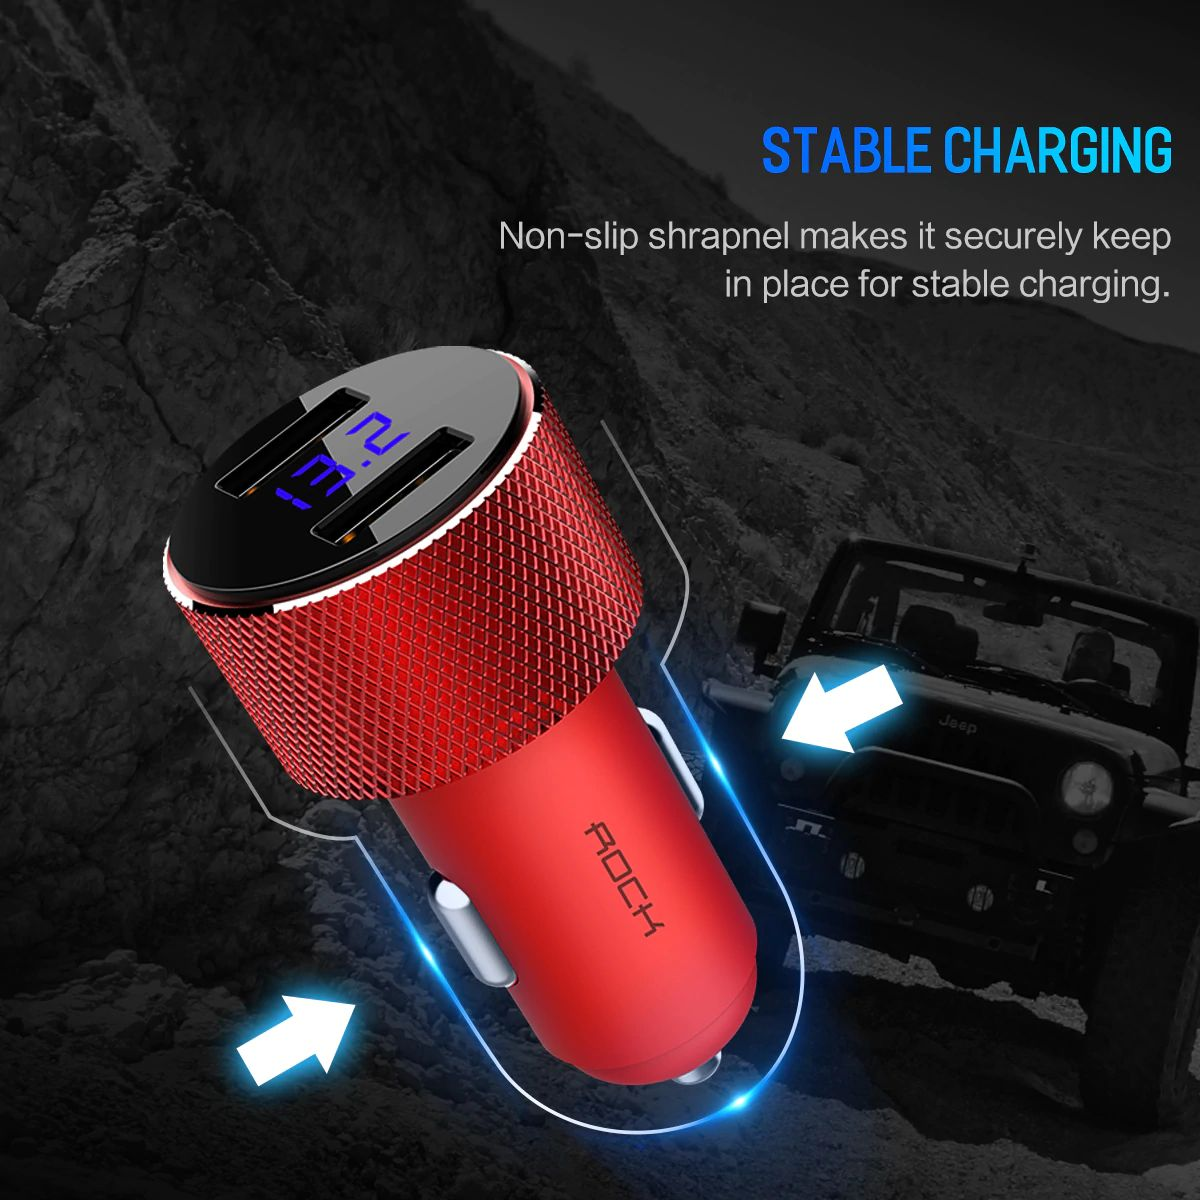 Rock Sitor Car Charger With Digital Display (6)